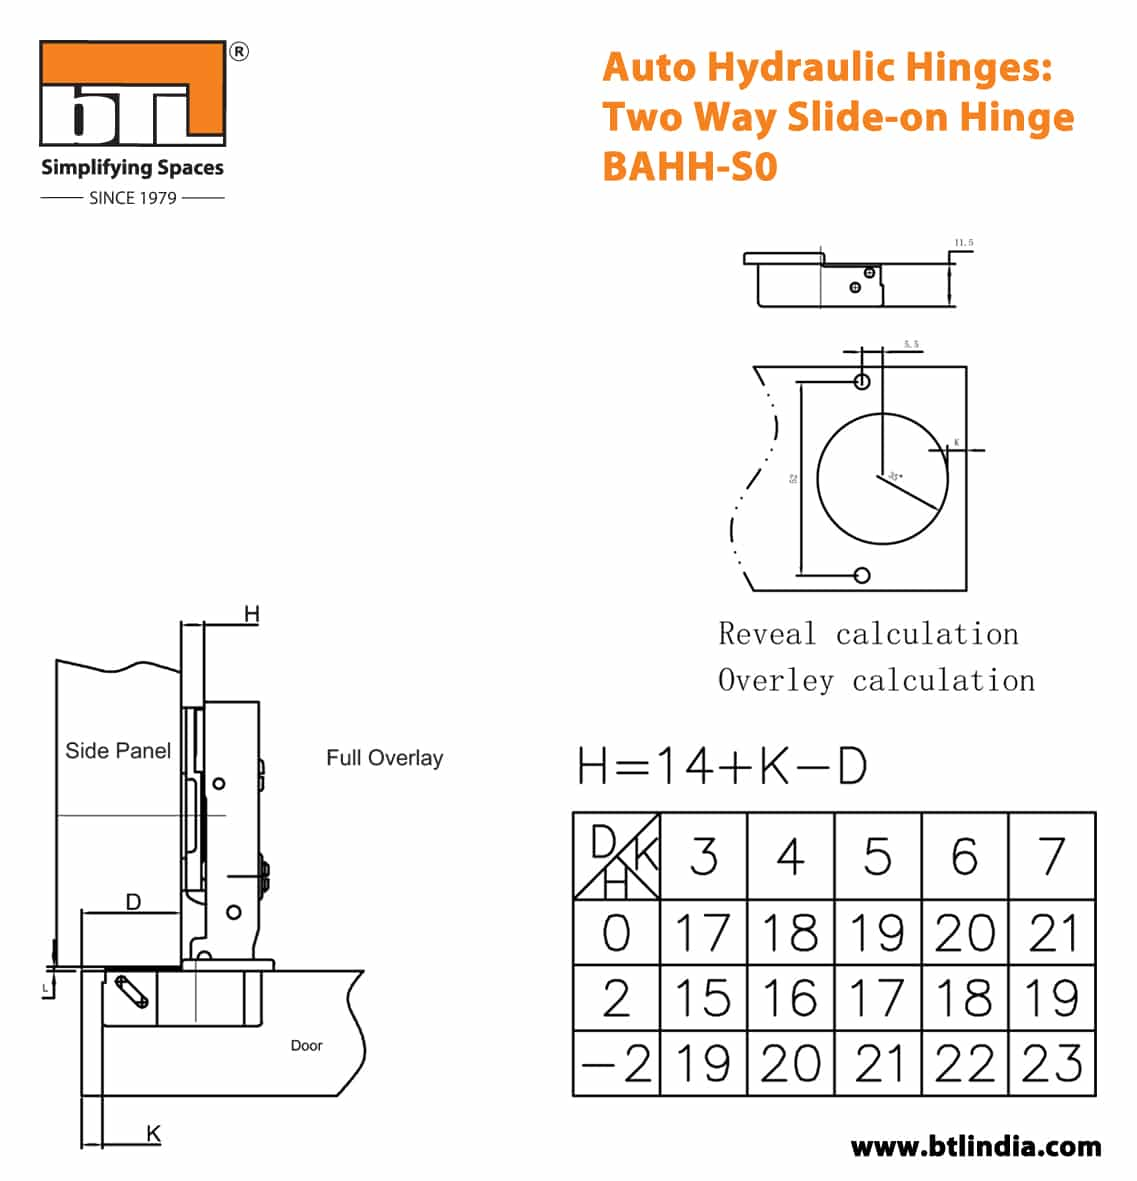 BTL BAHH-S0 Auto Hydraulic Hinge: Two Way Slide-on Hinge - Specifications